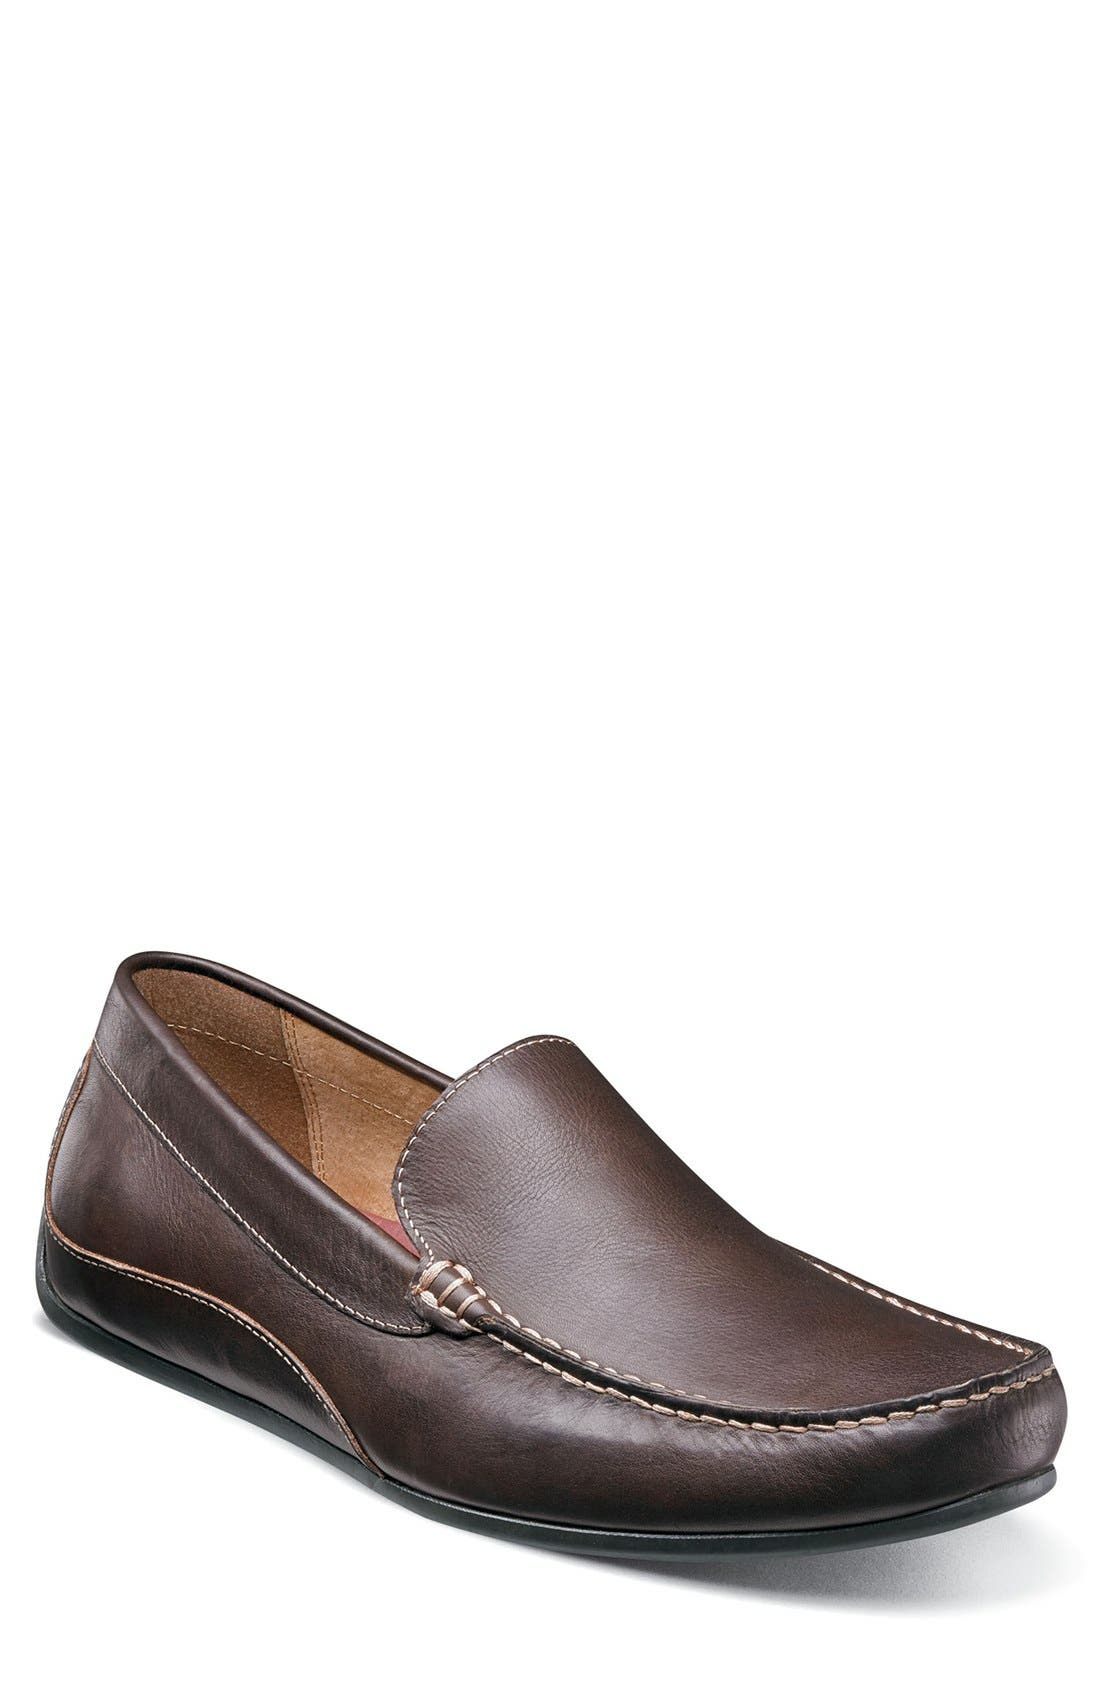 Oval Driving Shoe,                             Main thumbnail 1, color,                             Brown Leather